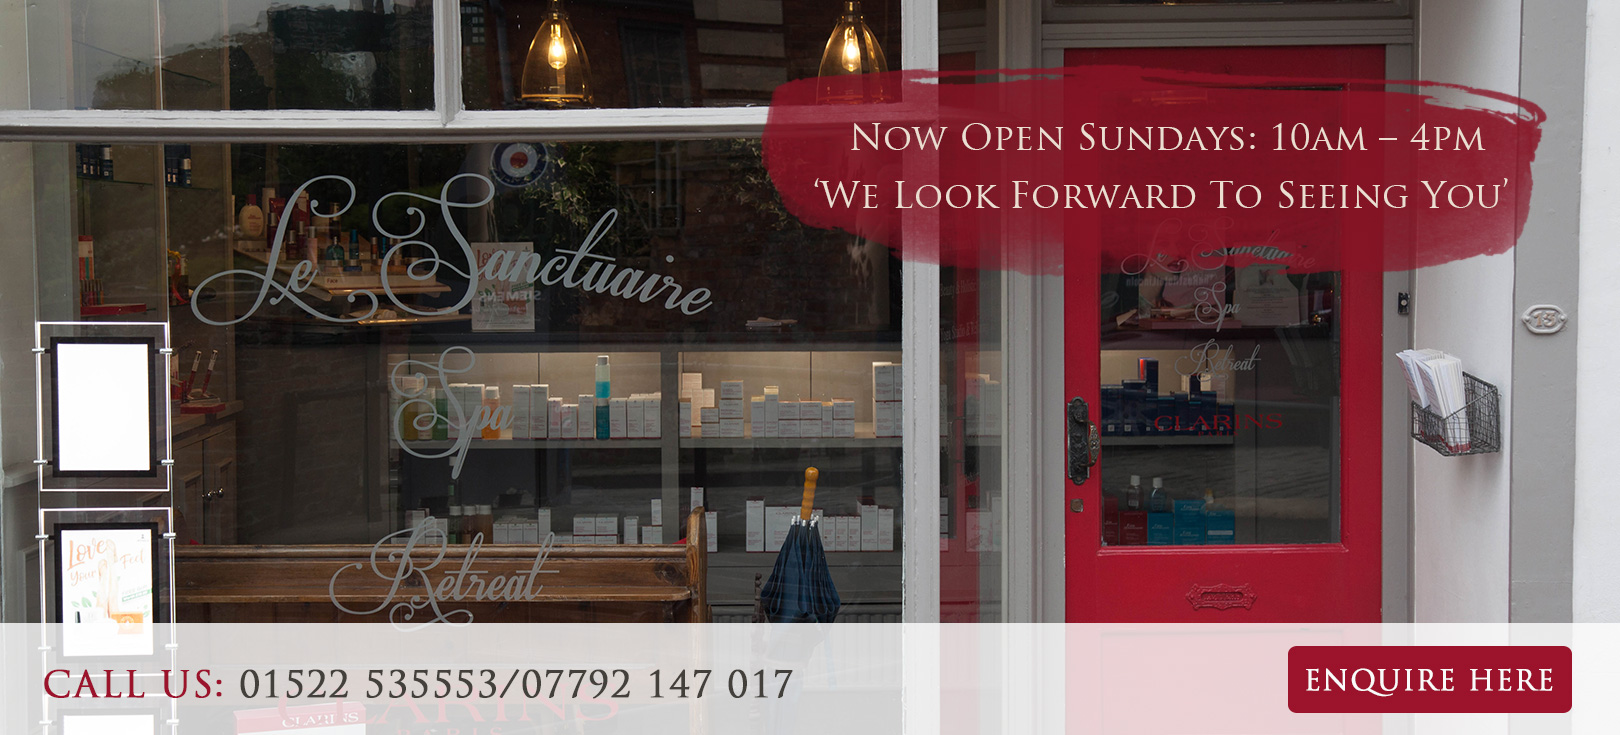 lesanctuaire-lincoln-open-sundays